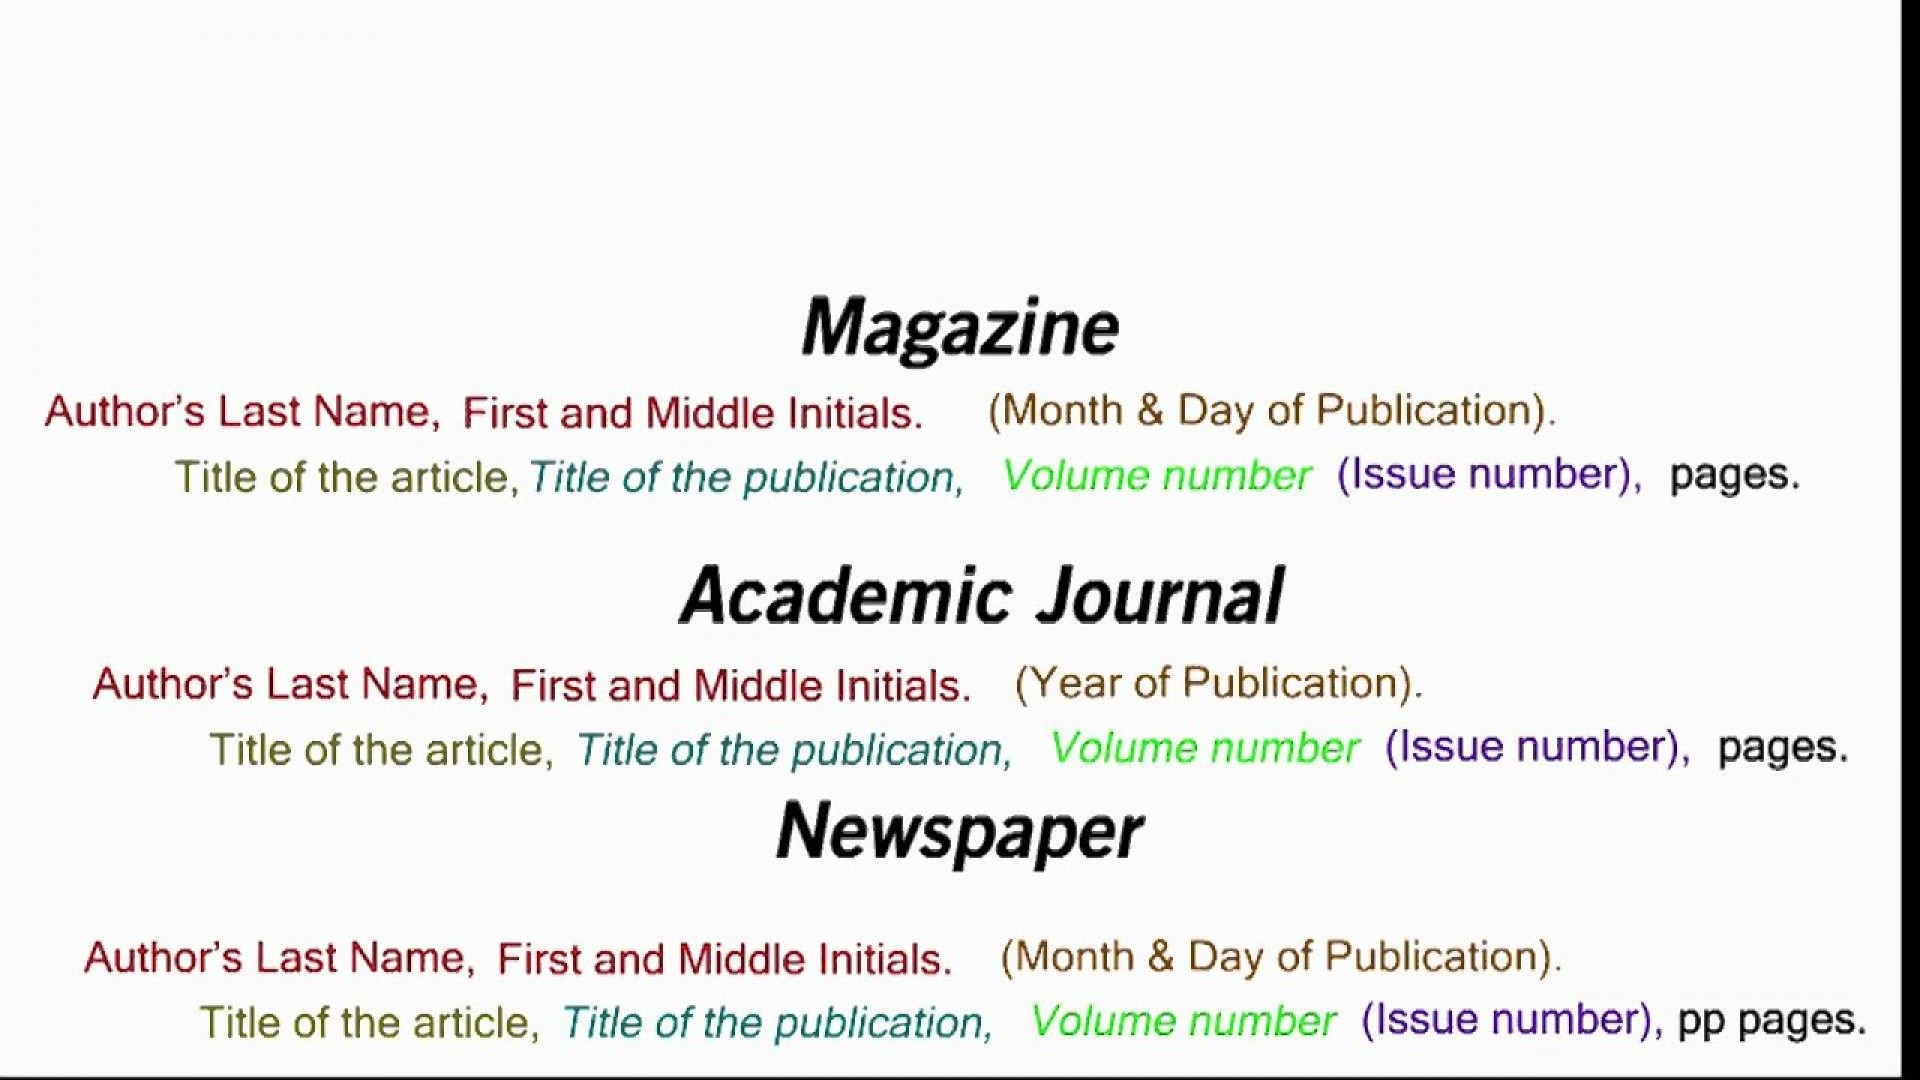 004 Maxresdefault How To Cite Articles In Essay Singular References Apa Paper Article Name A Newspaper Your 1920